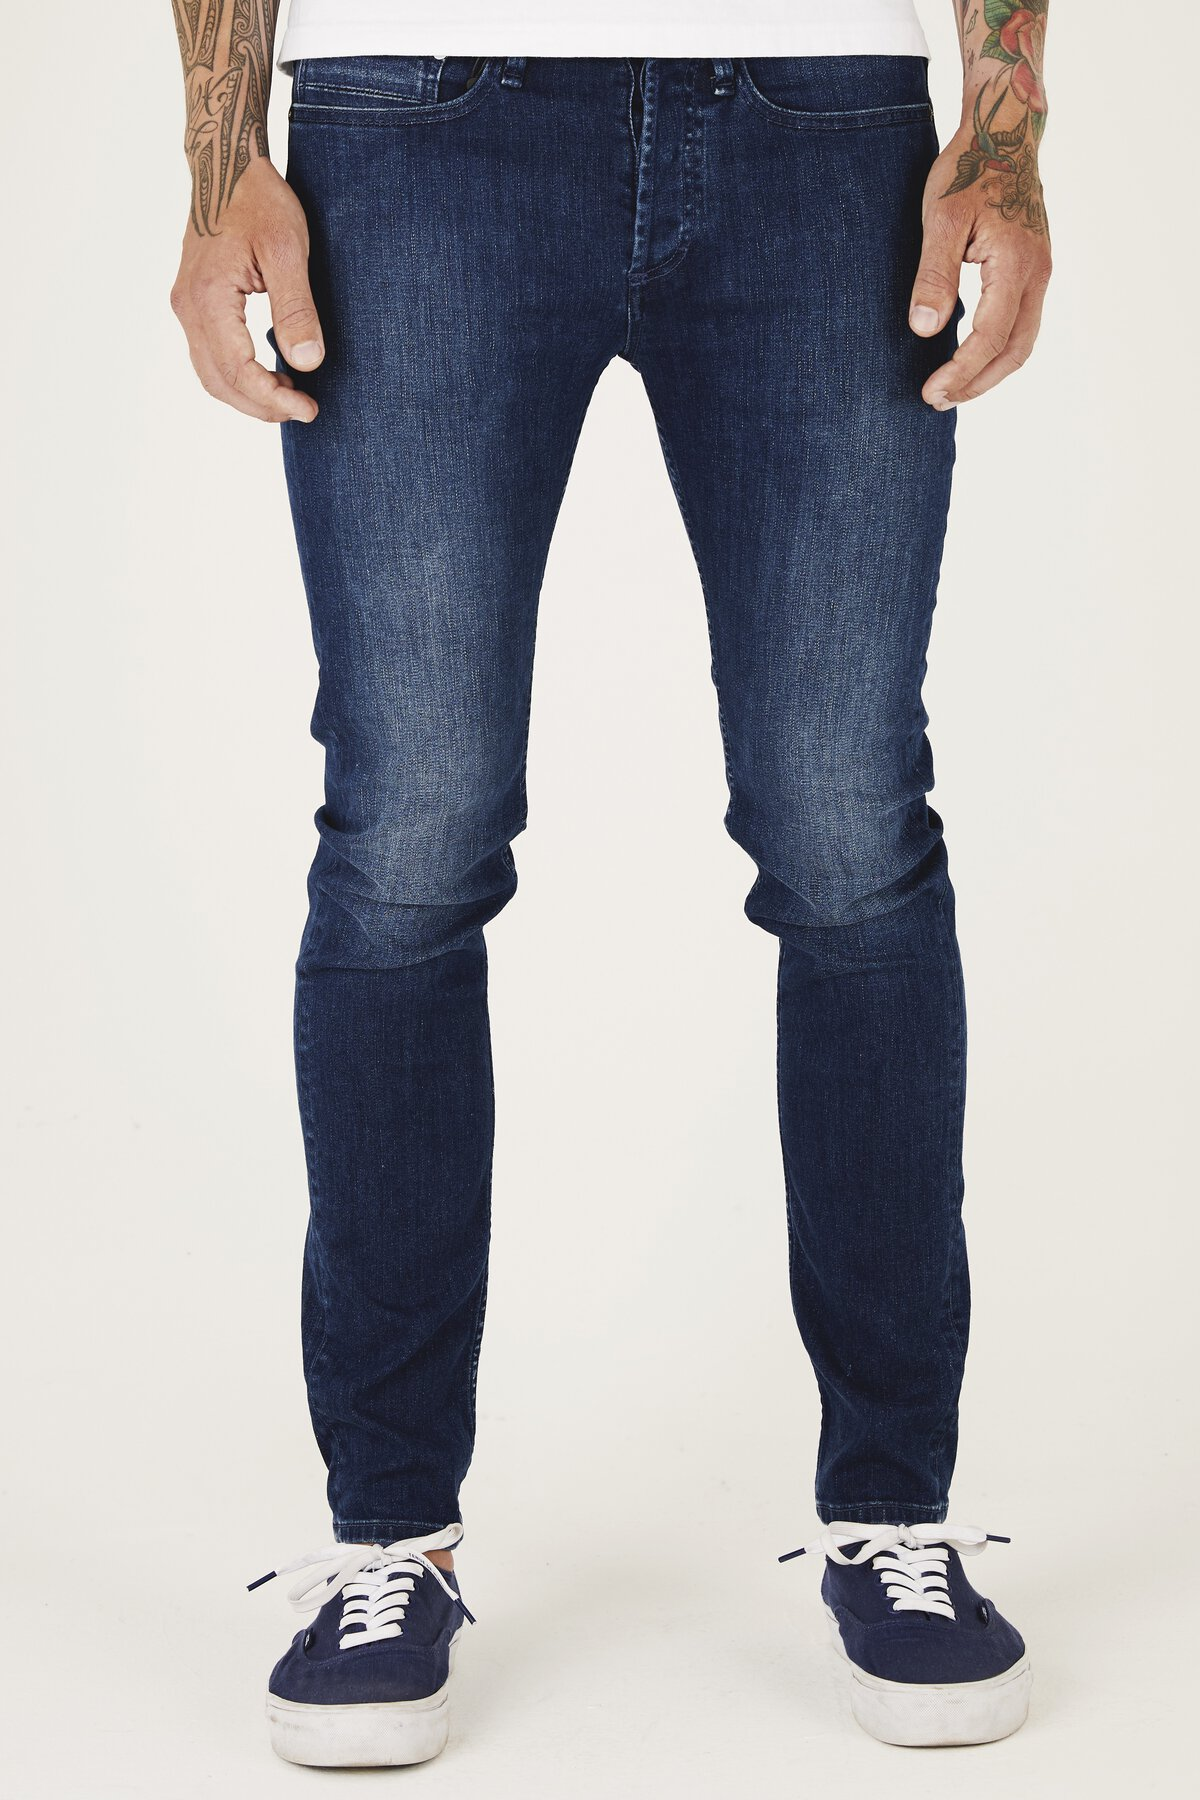 Bolt - Skinny Fit Jeans - Front